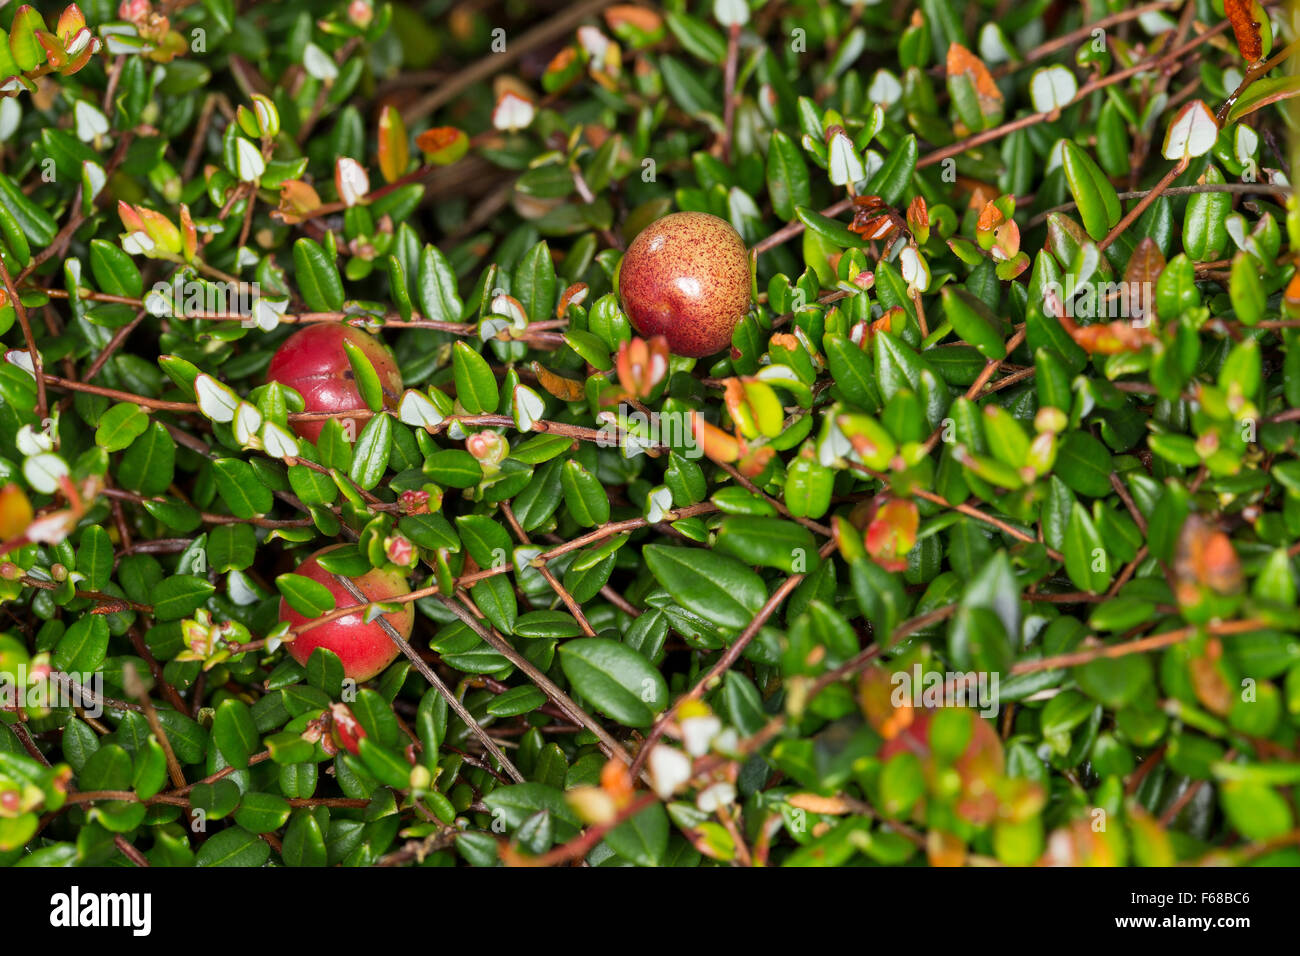 a report of cranberry wilderness Cranberry wilderness monongahela national forest mnf gis staff utm, zone 17, nad 83 july 30, 2006 Å c:/gis_data/projects/brochures/cranberry_wildernessmxd.